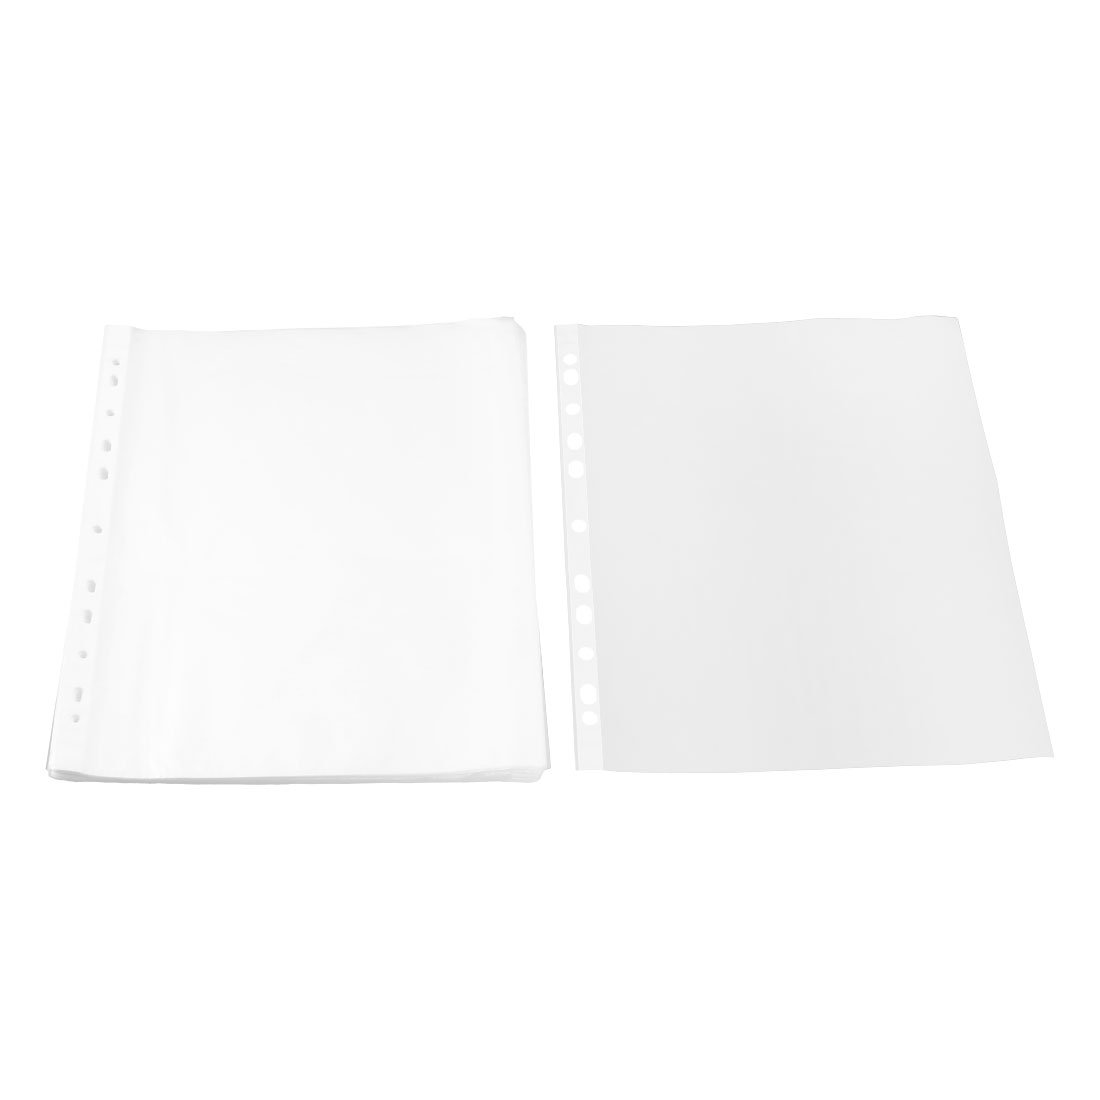 uxcell Plastic School Square Shaped File A4 Paper Storage Sheet Protector 0.02cm Thickness 100pcs Clear